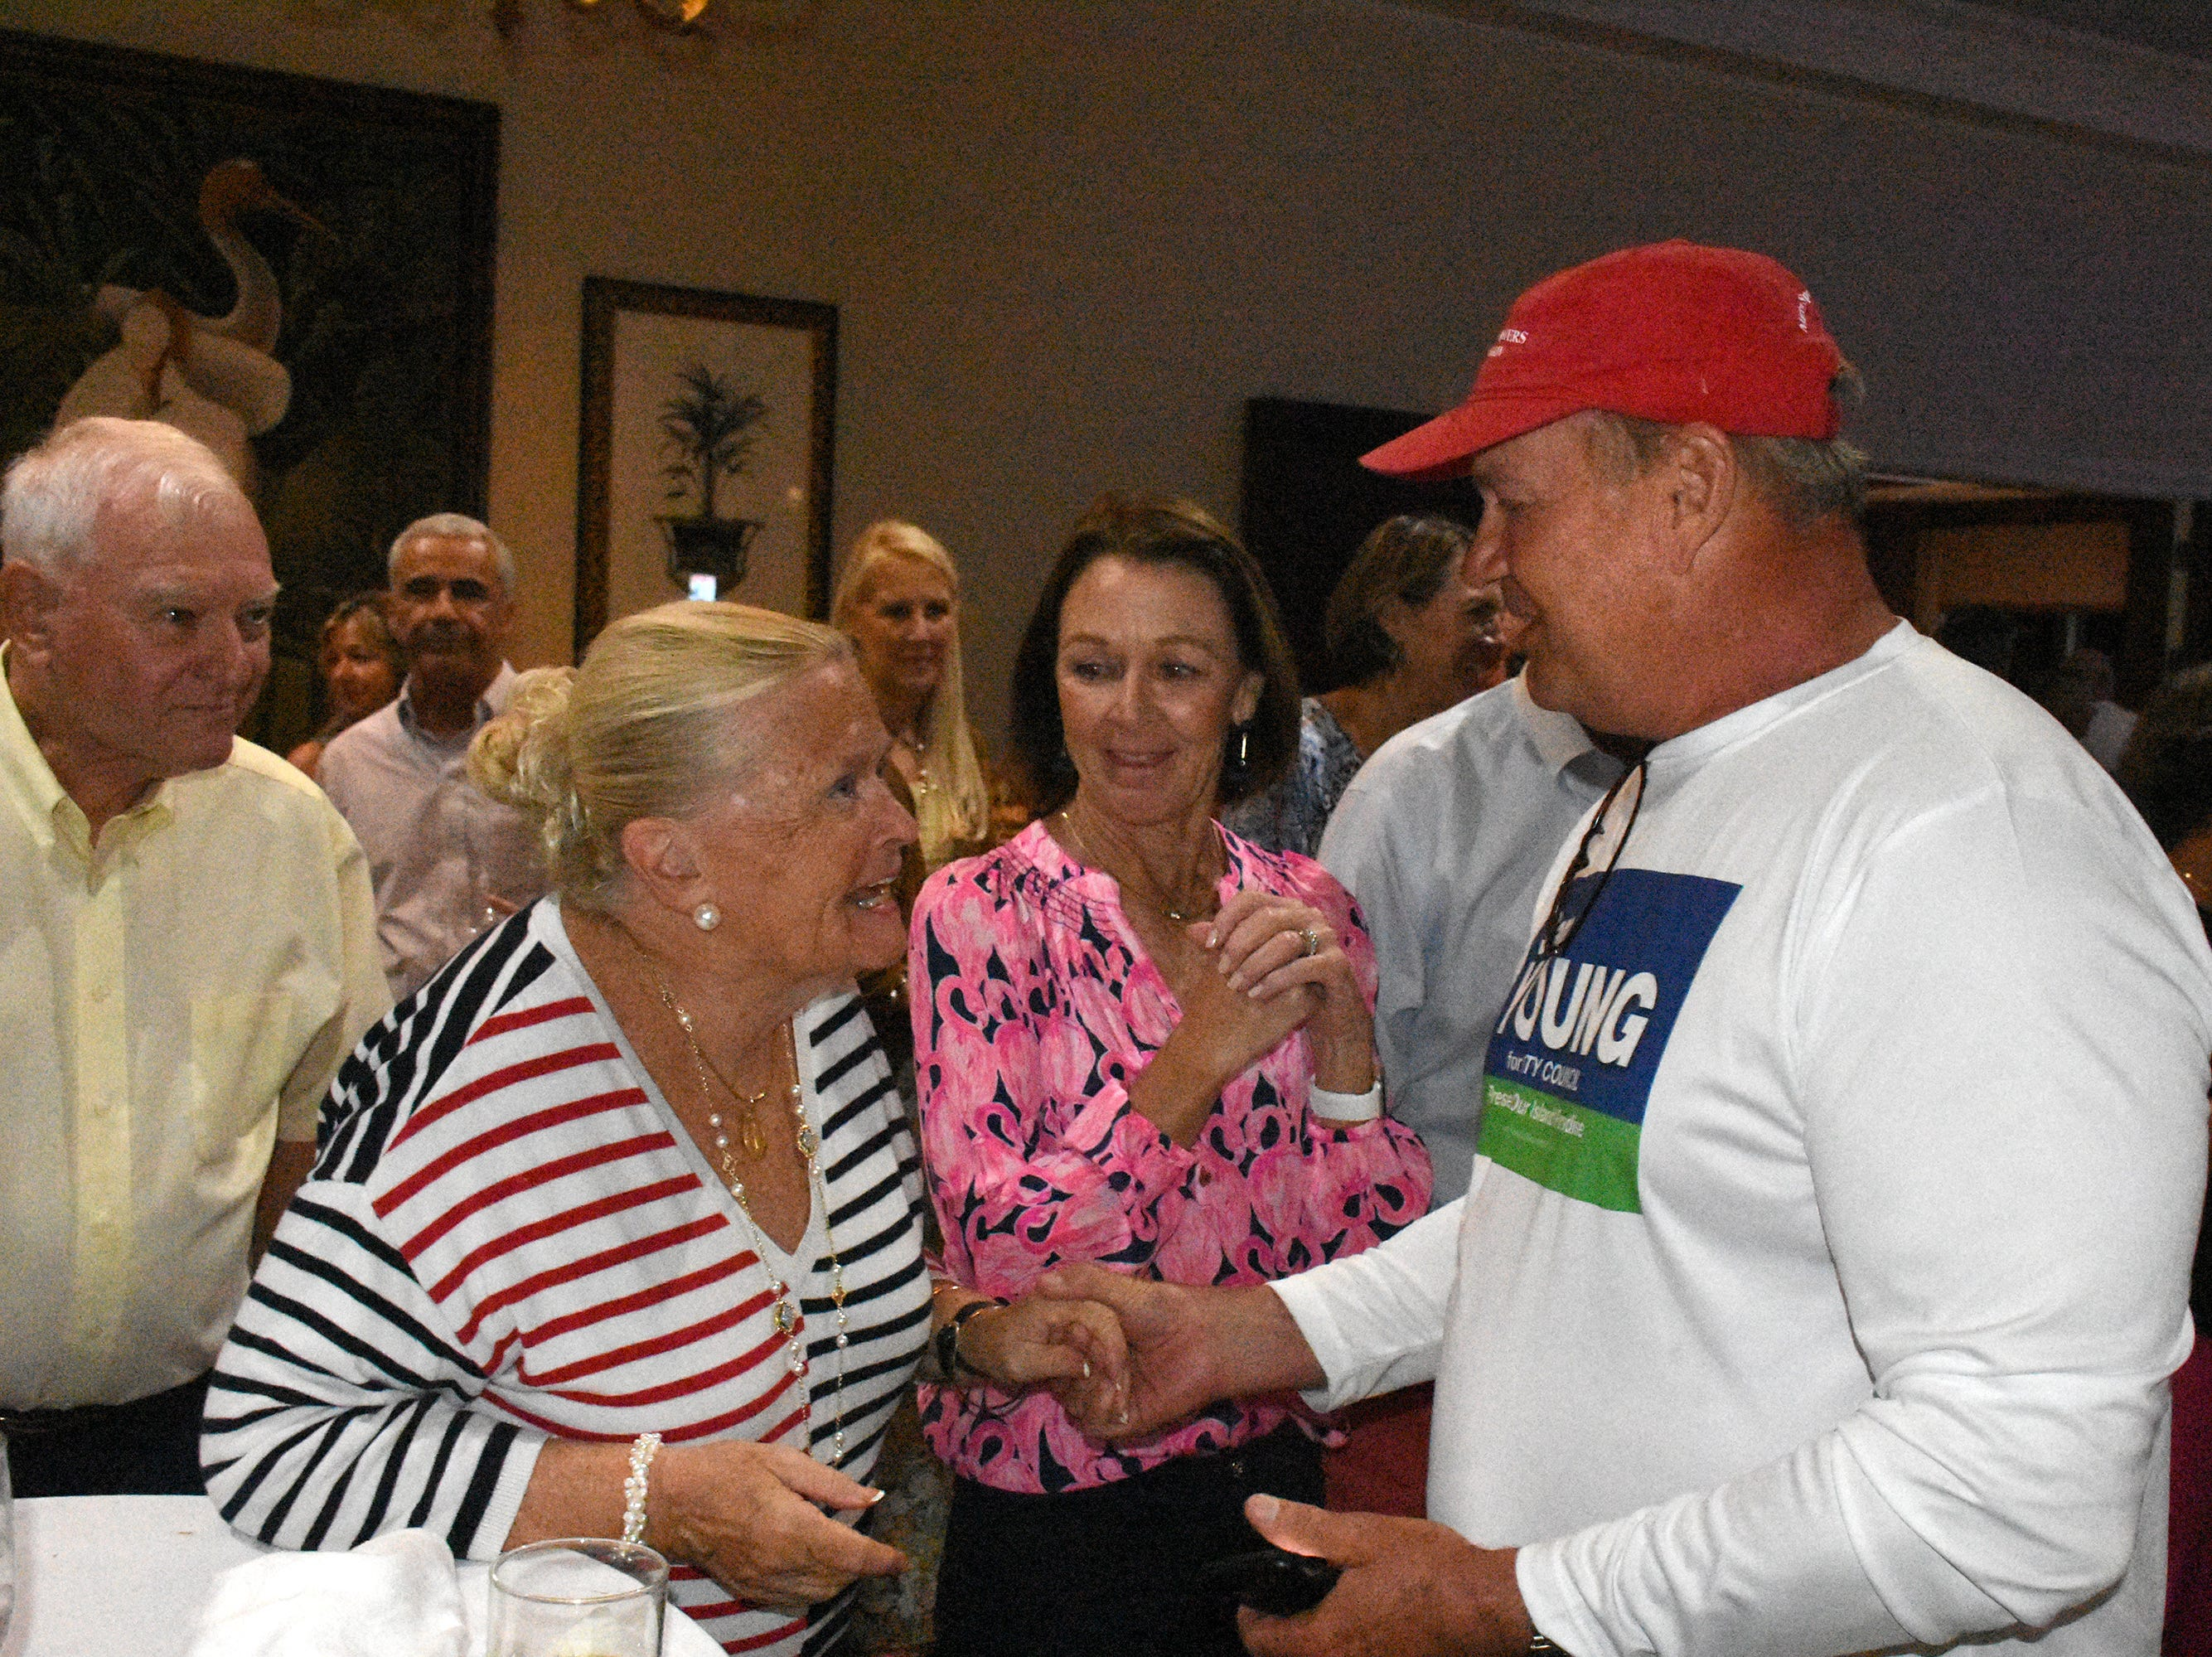 Winner Sam Young celebrates his win. Marco Island voters elected Erik Bredhnitz and Sam Young along with re-electing incumbent Victor Rios for four year temrs on the Marco Island City Council Tuesday evening.